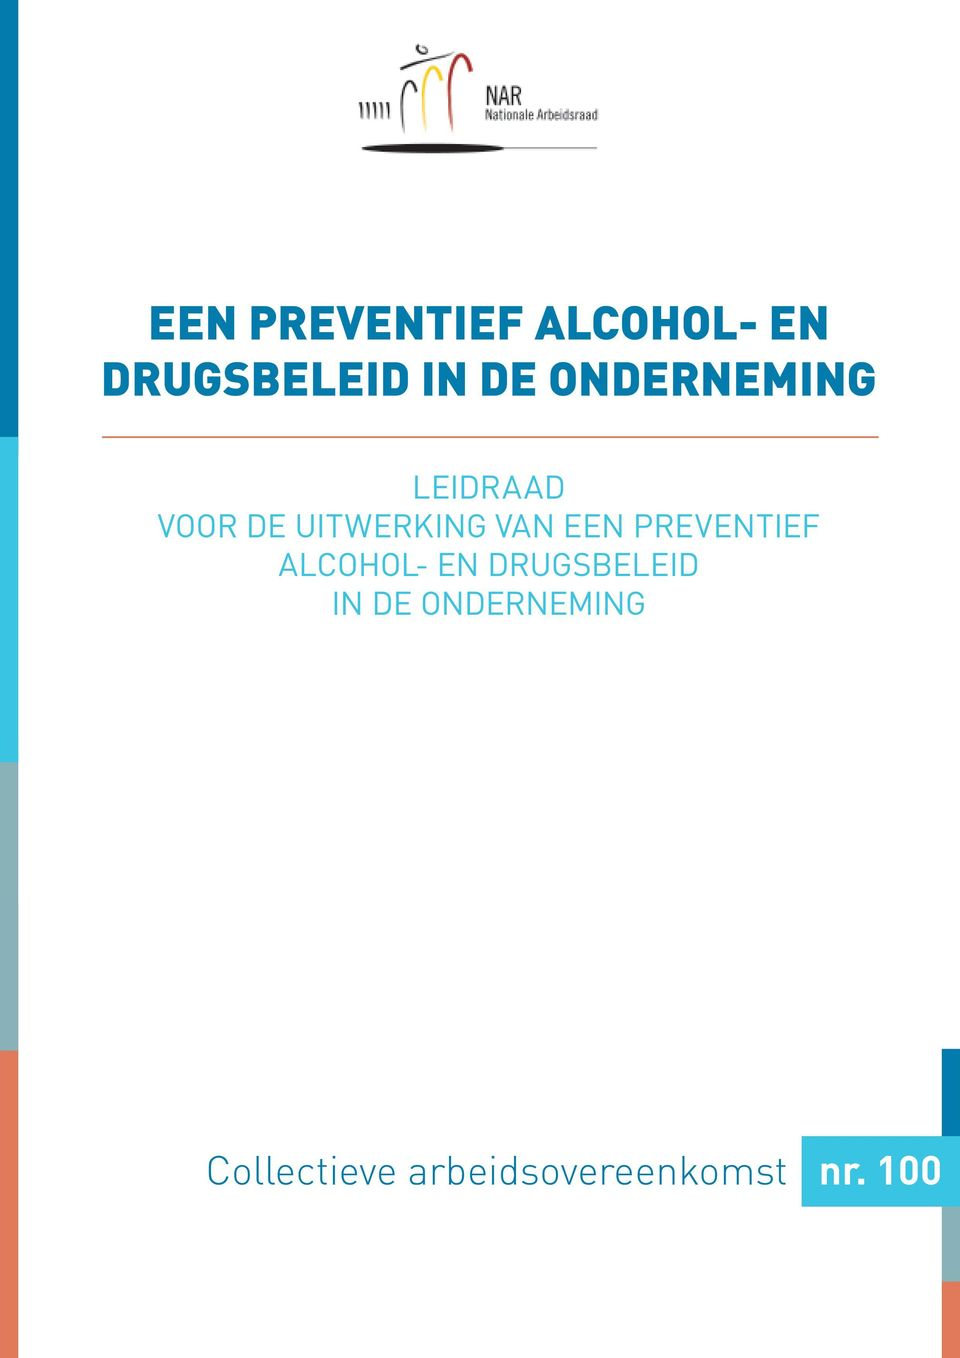 Een preventief alcohol- en drugsbeleid in de